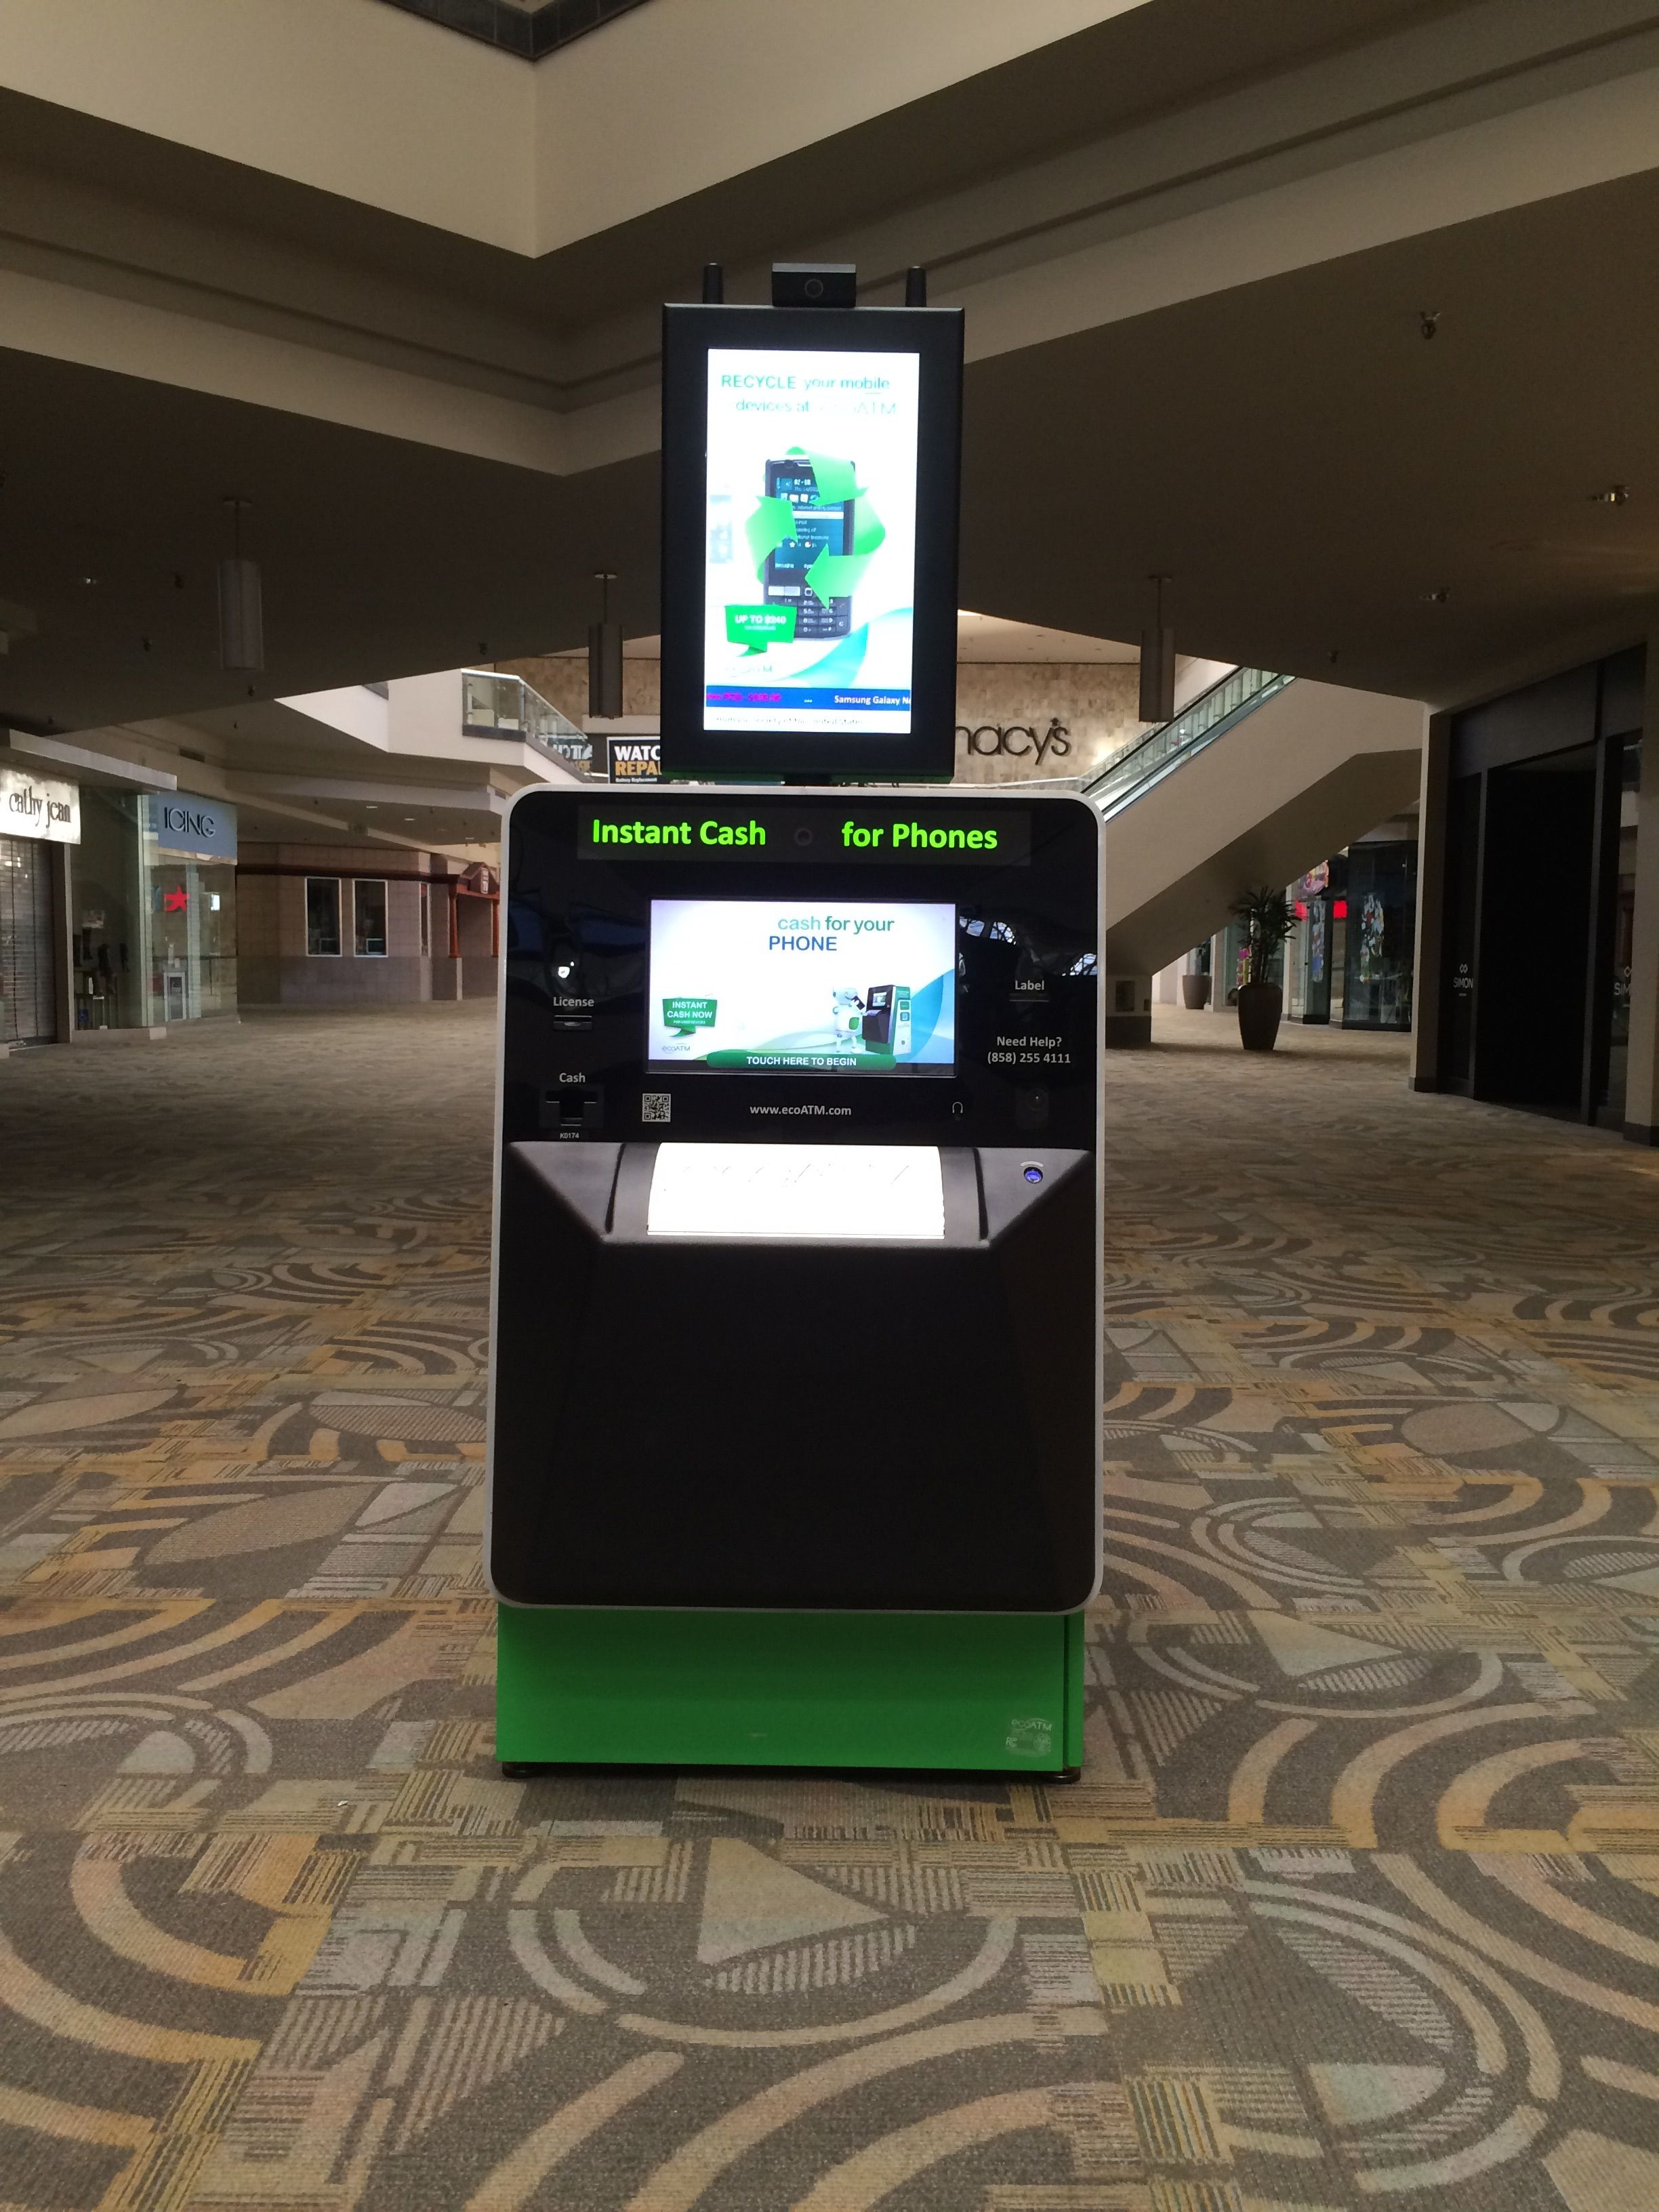 This ecoATM kiosk can be found at Westminster Mall in